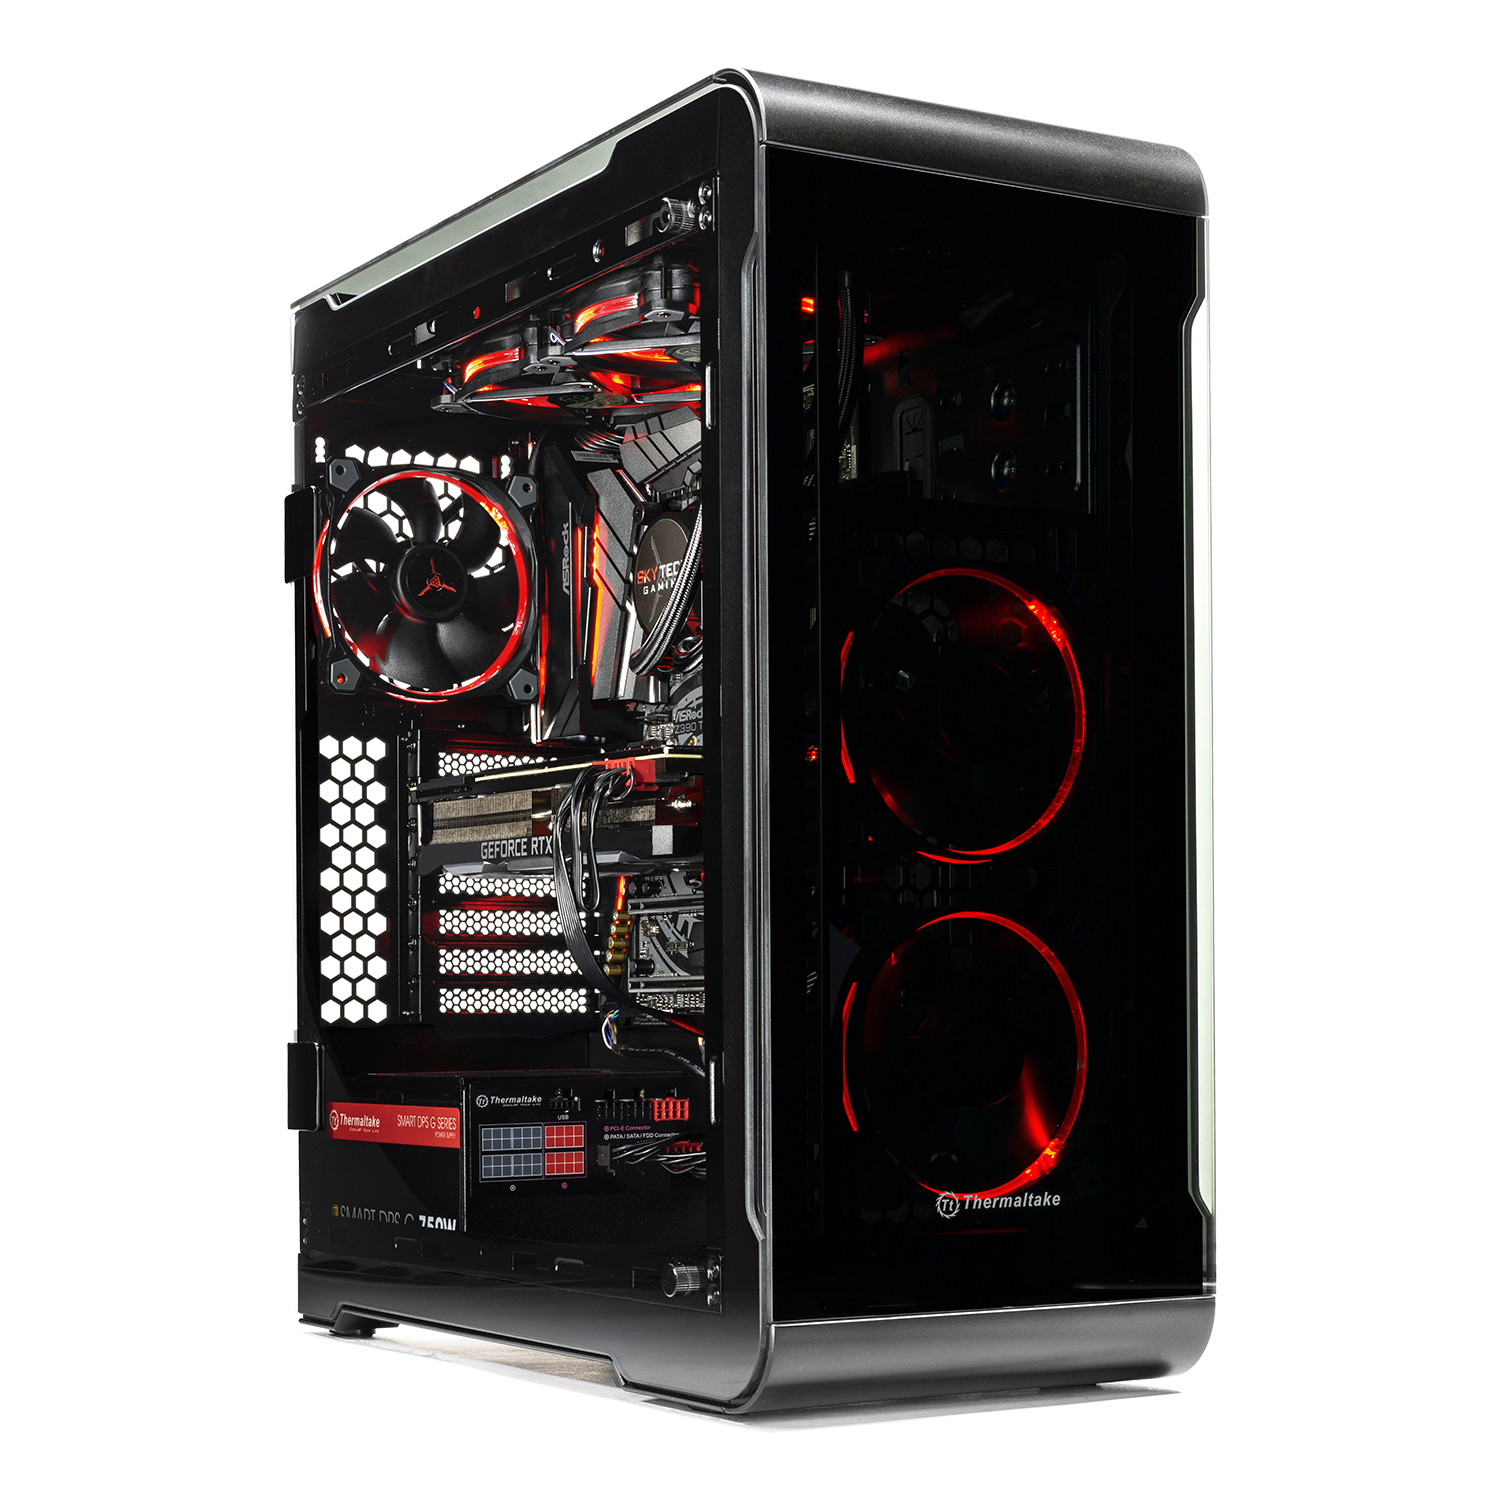 SkyTech Legacy Extreme – VR/4K Ready Gaming PC - i7-9700K, RTX 2080 Ti 11GB, 500GB NVME, 240mm Liquid Cool, 1TB HDD, 16GB DDR4, Window 10 Home